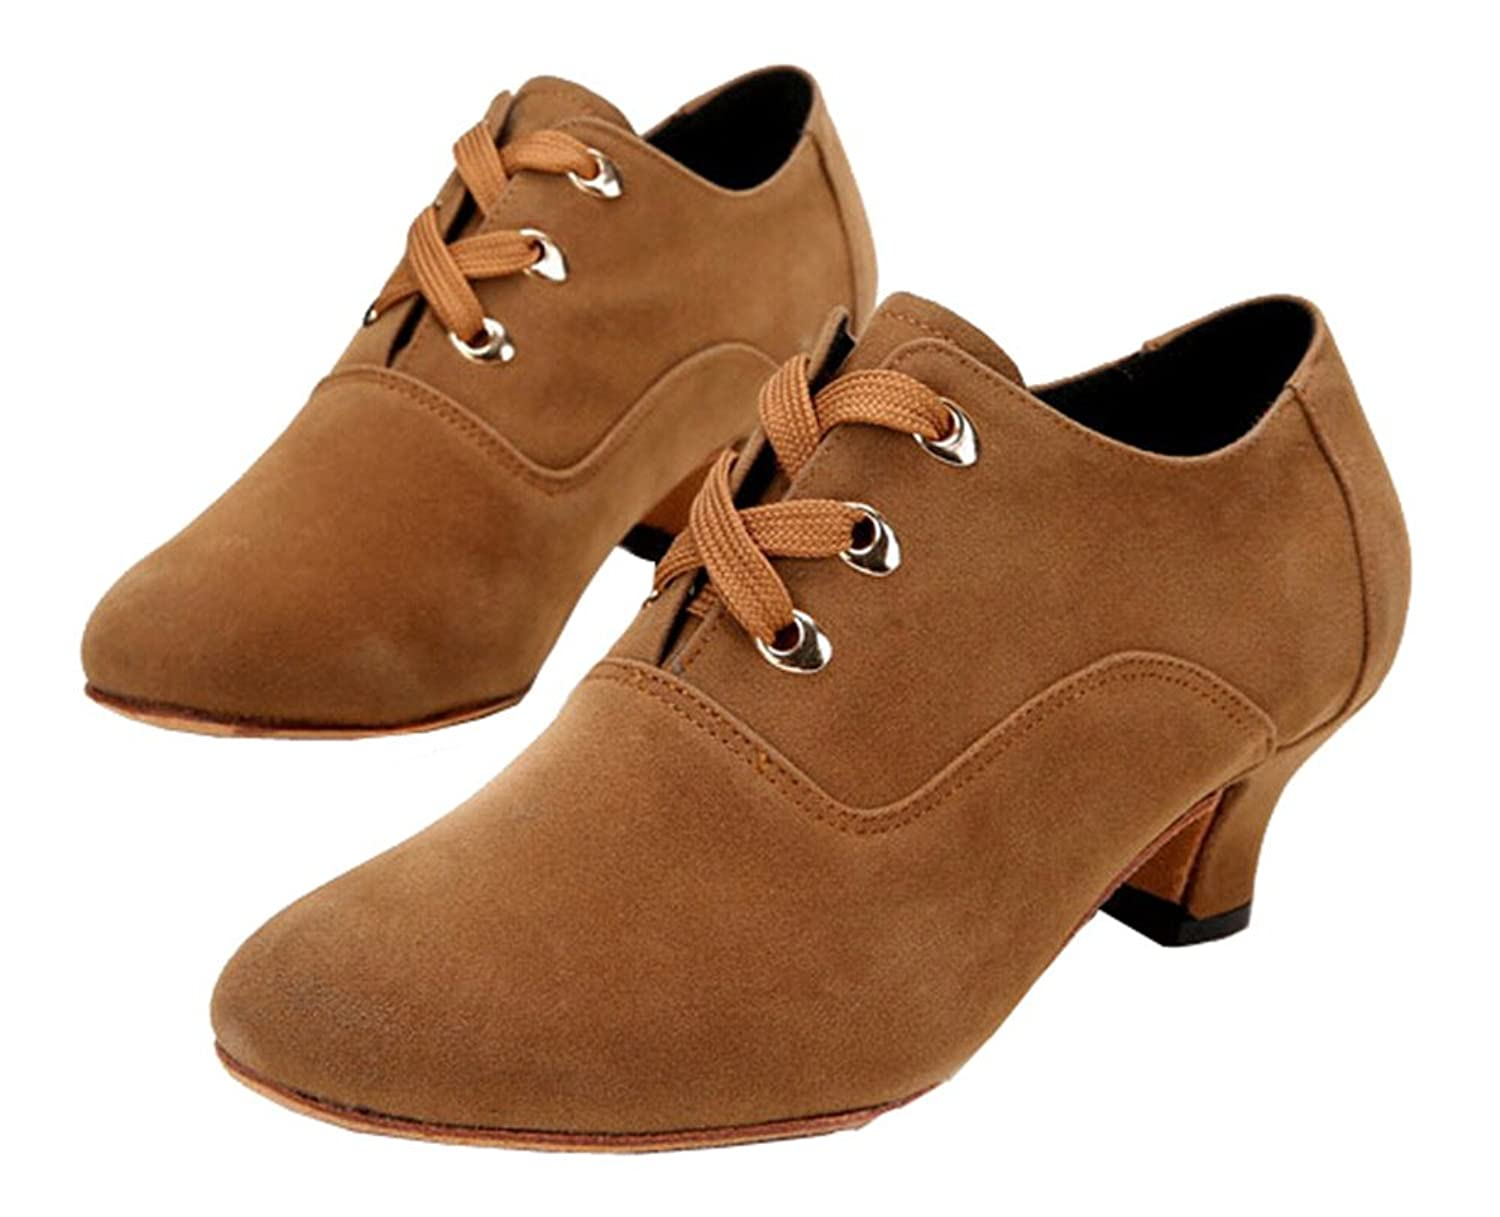 Retro Style Dance Shoes Womens Modern Practice Social Dance Shoes Ankle Jazz Boots Lace-up $33.50 AT vintagedancer.com